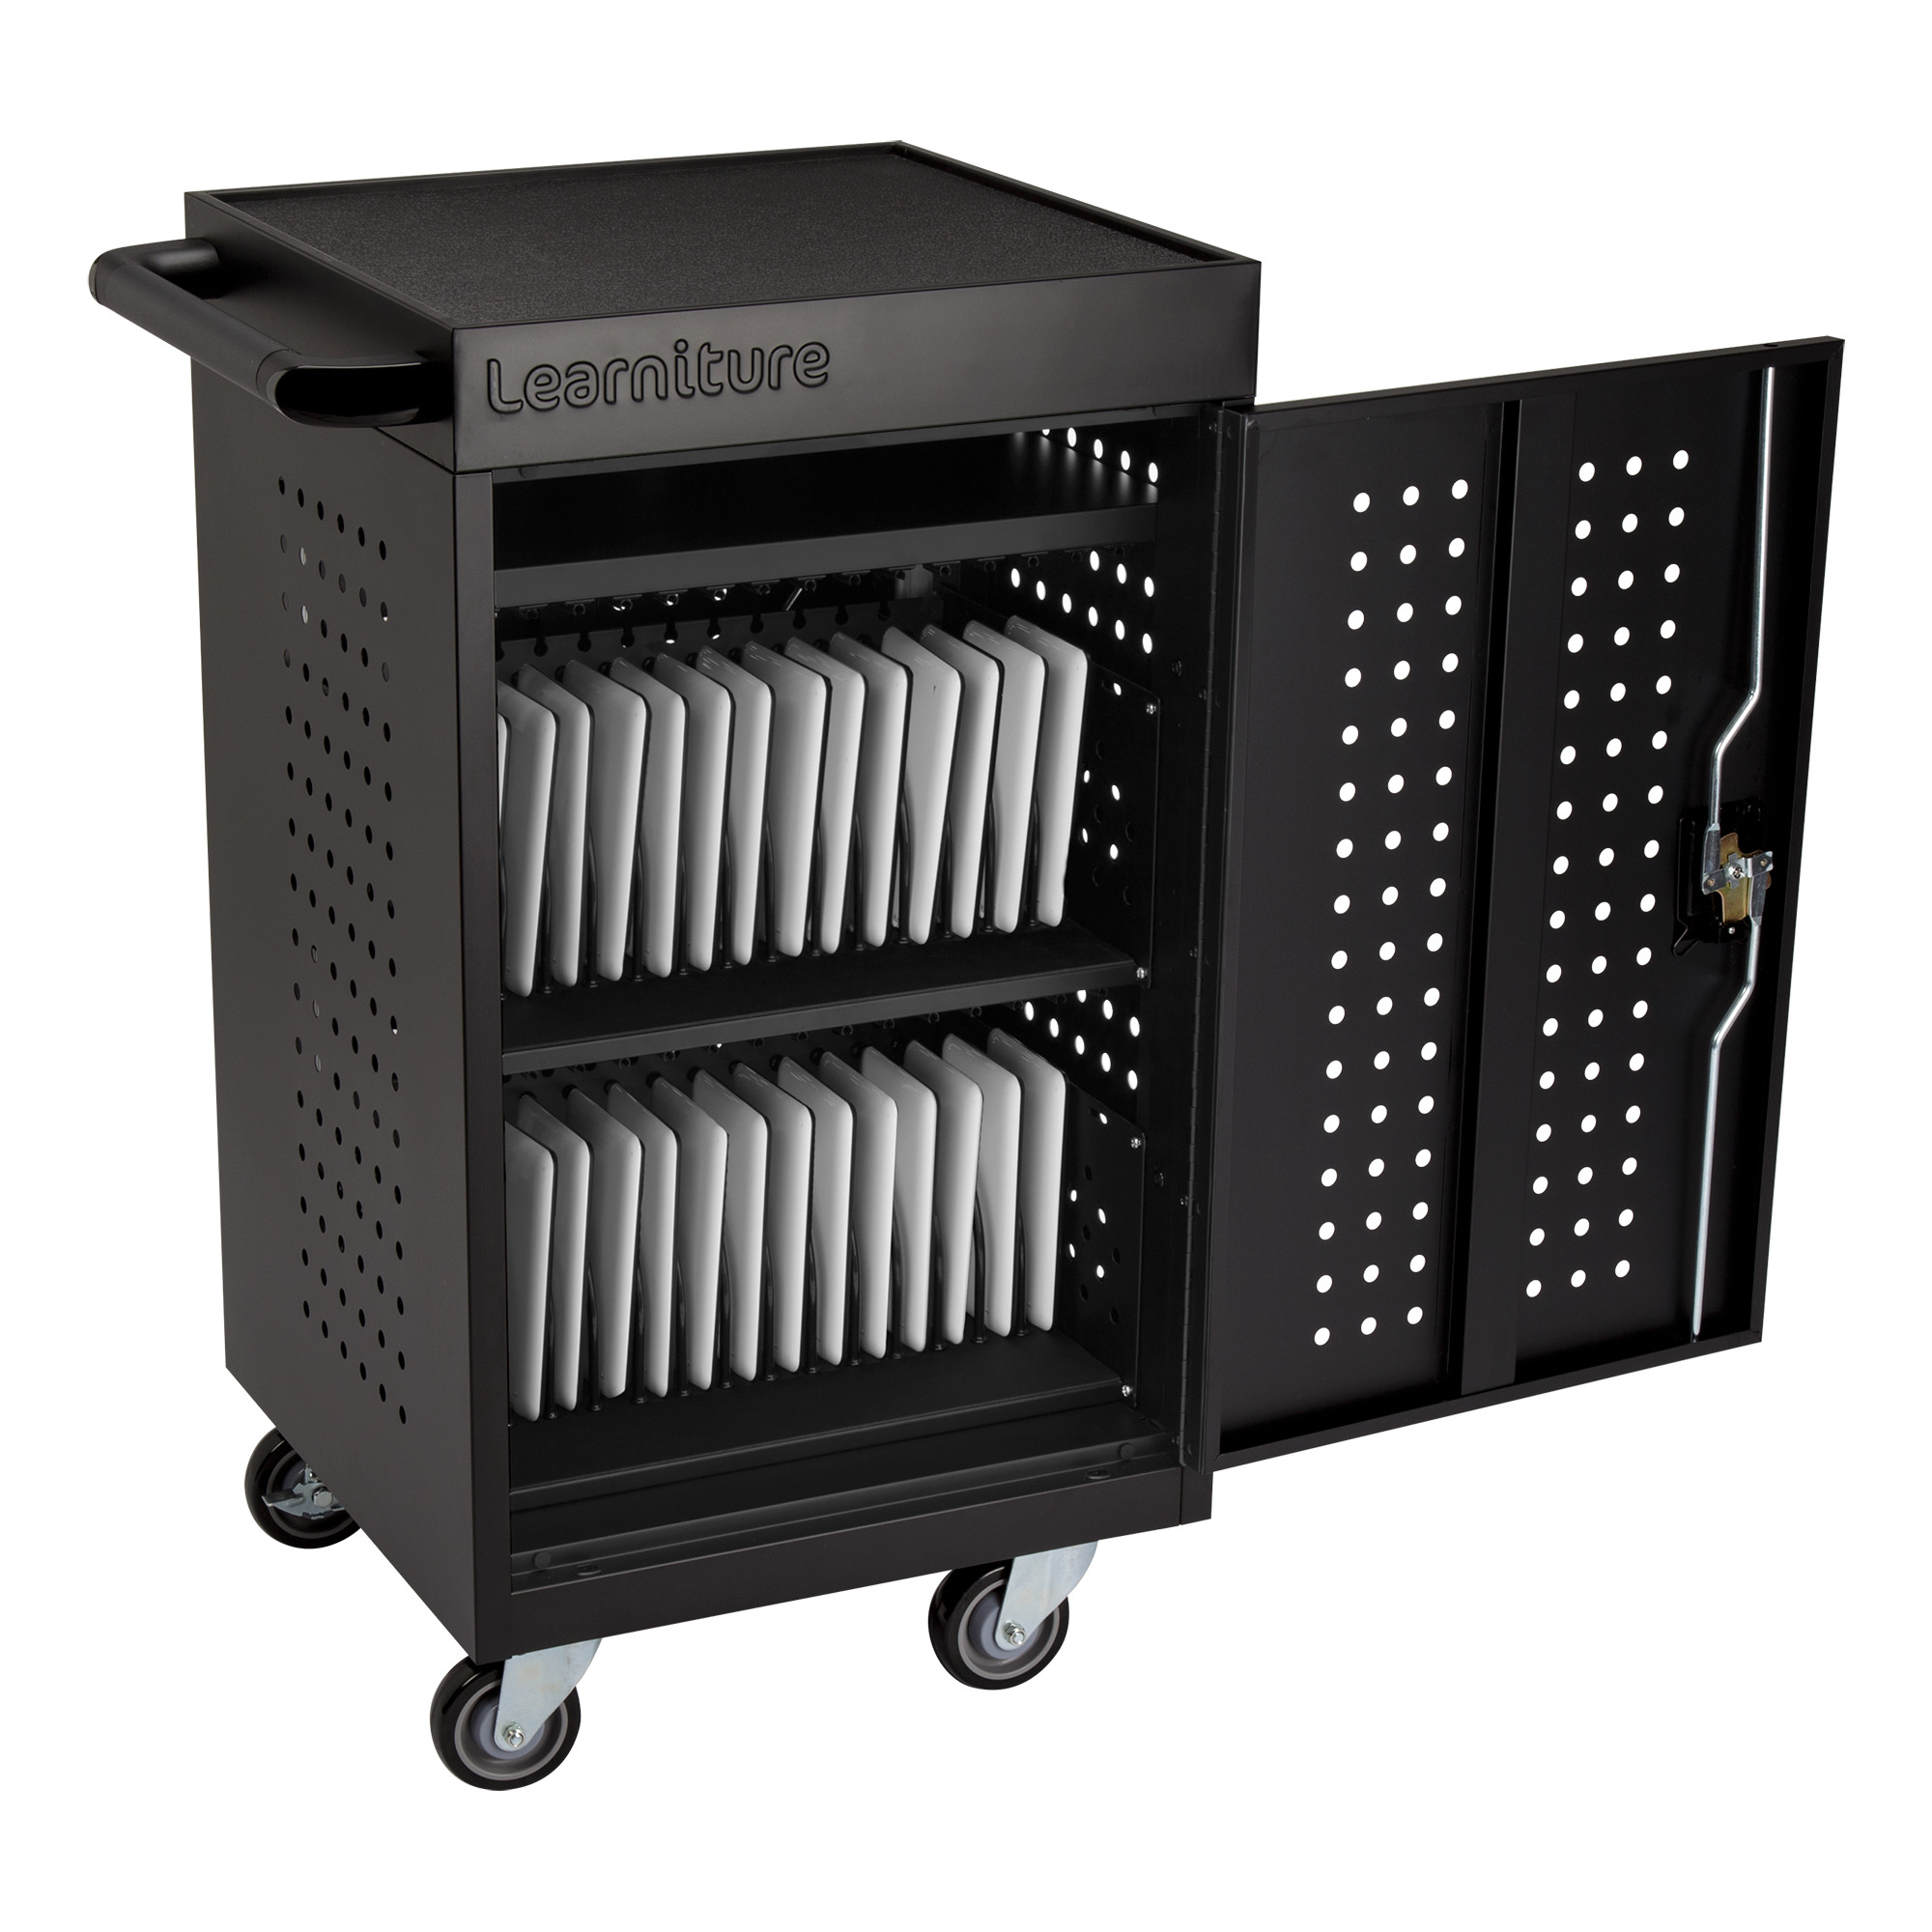 LNT GNO3008 SO_Tablets?width=265&height=265&version=v20171115 learniture structure series 30 bay tablet charging cart w  at reclaimingppi.co